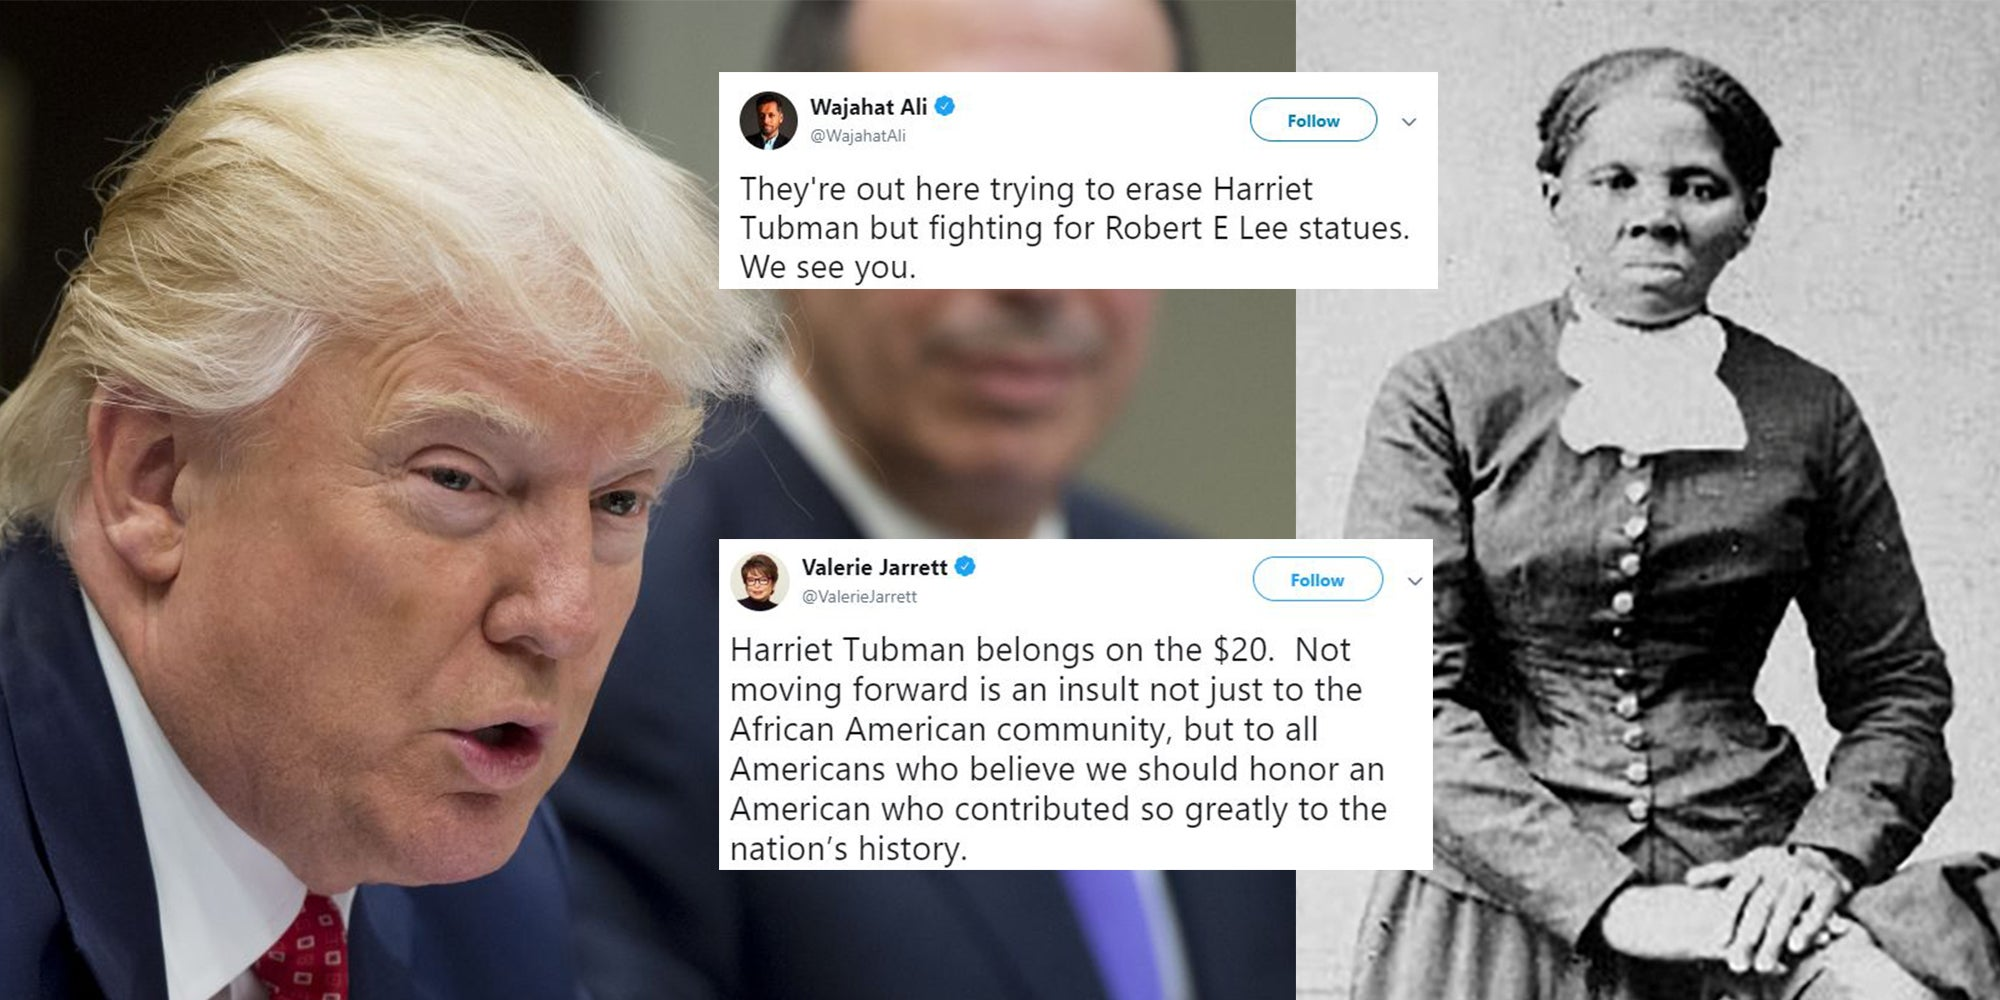 Trump administration accused of 'racism' after delaying plans to include slavery abolitionist on new $20 bill